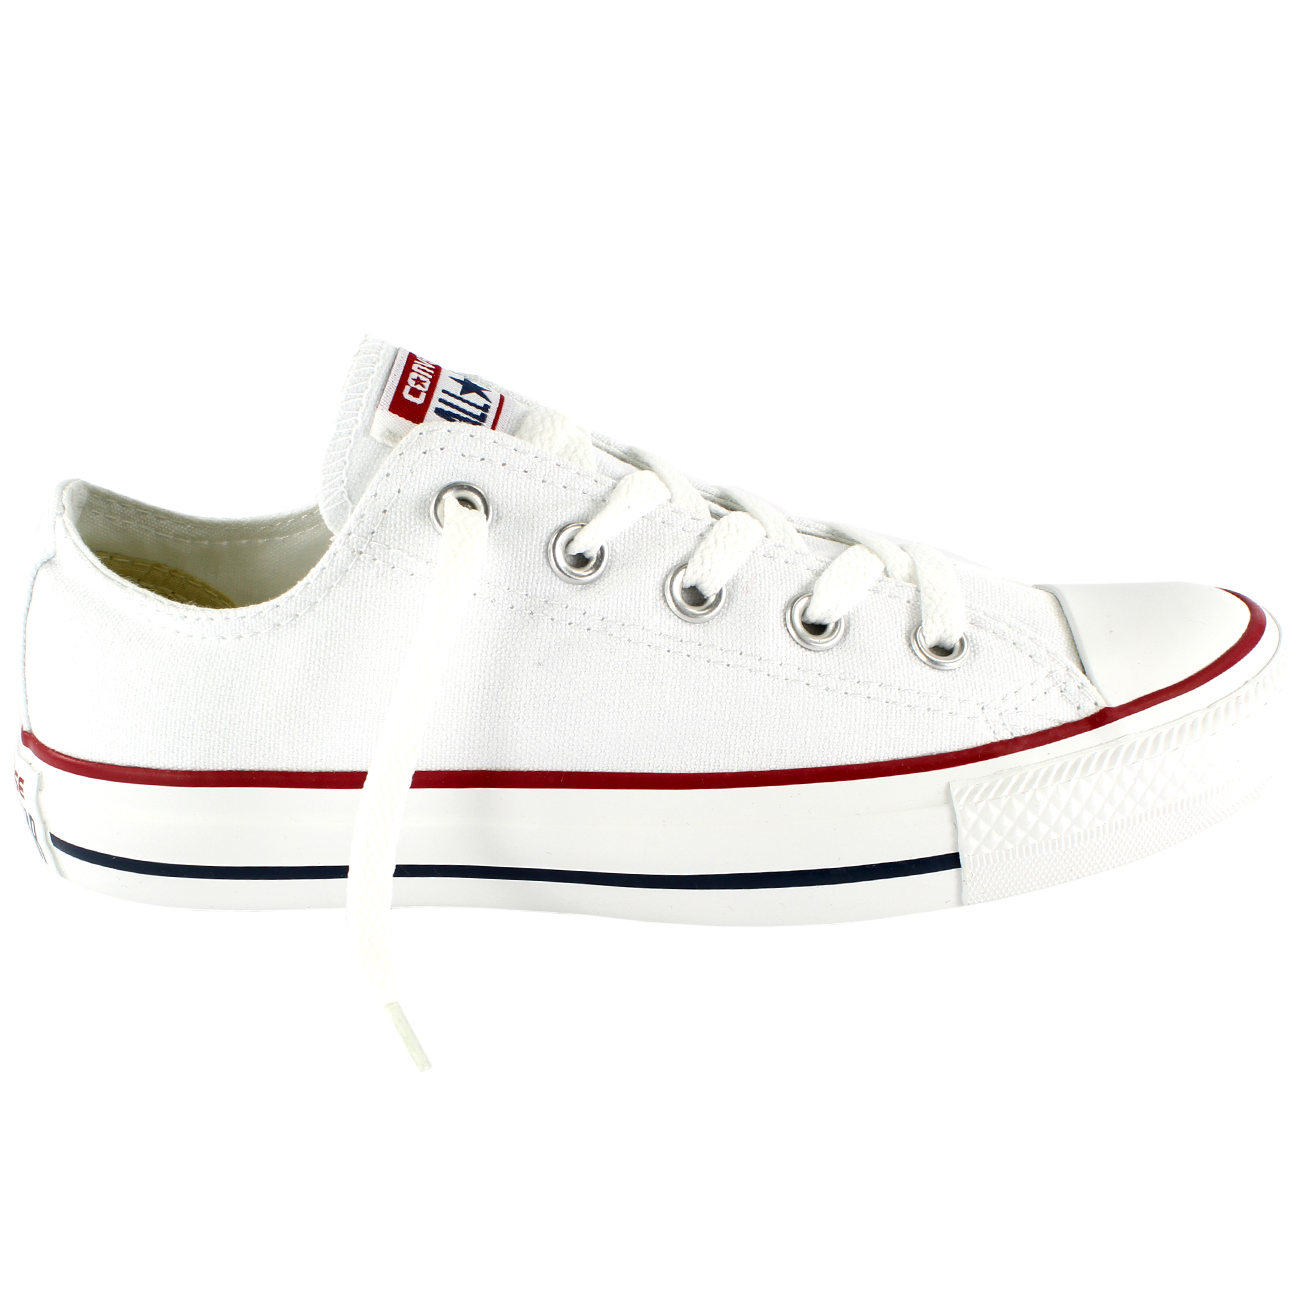 Mens-Converse-All-Star-Ox-Low-Top-Chuck-